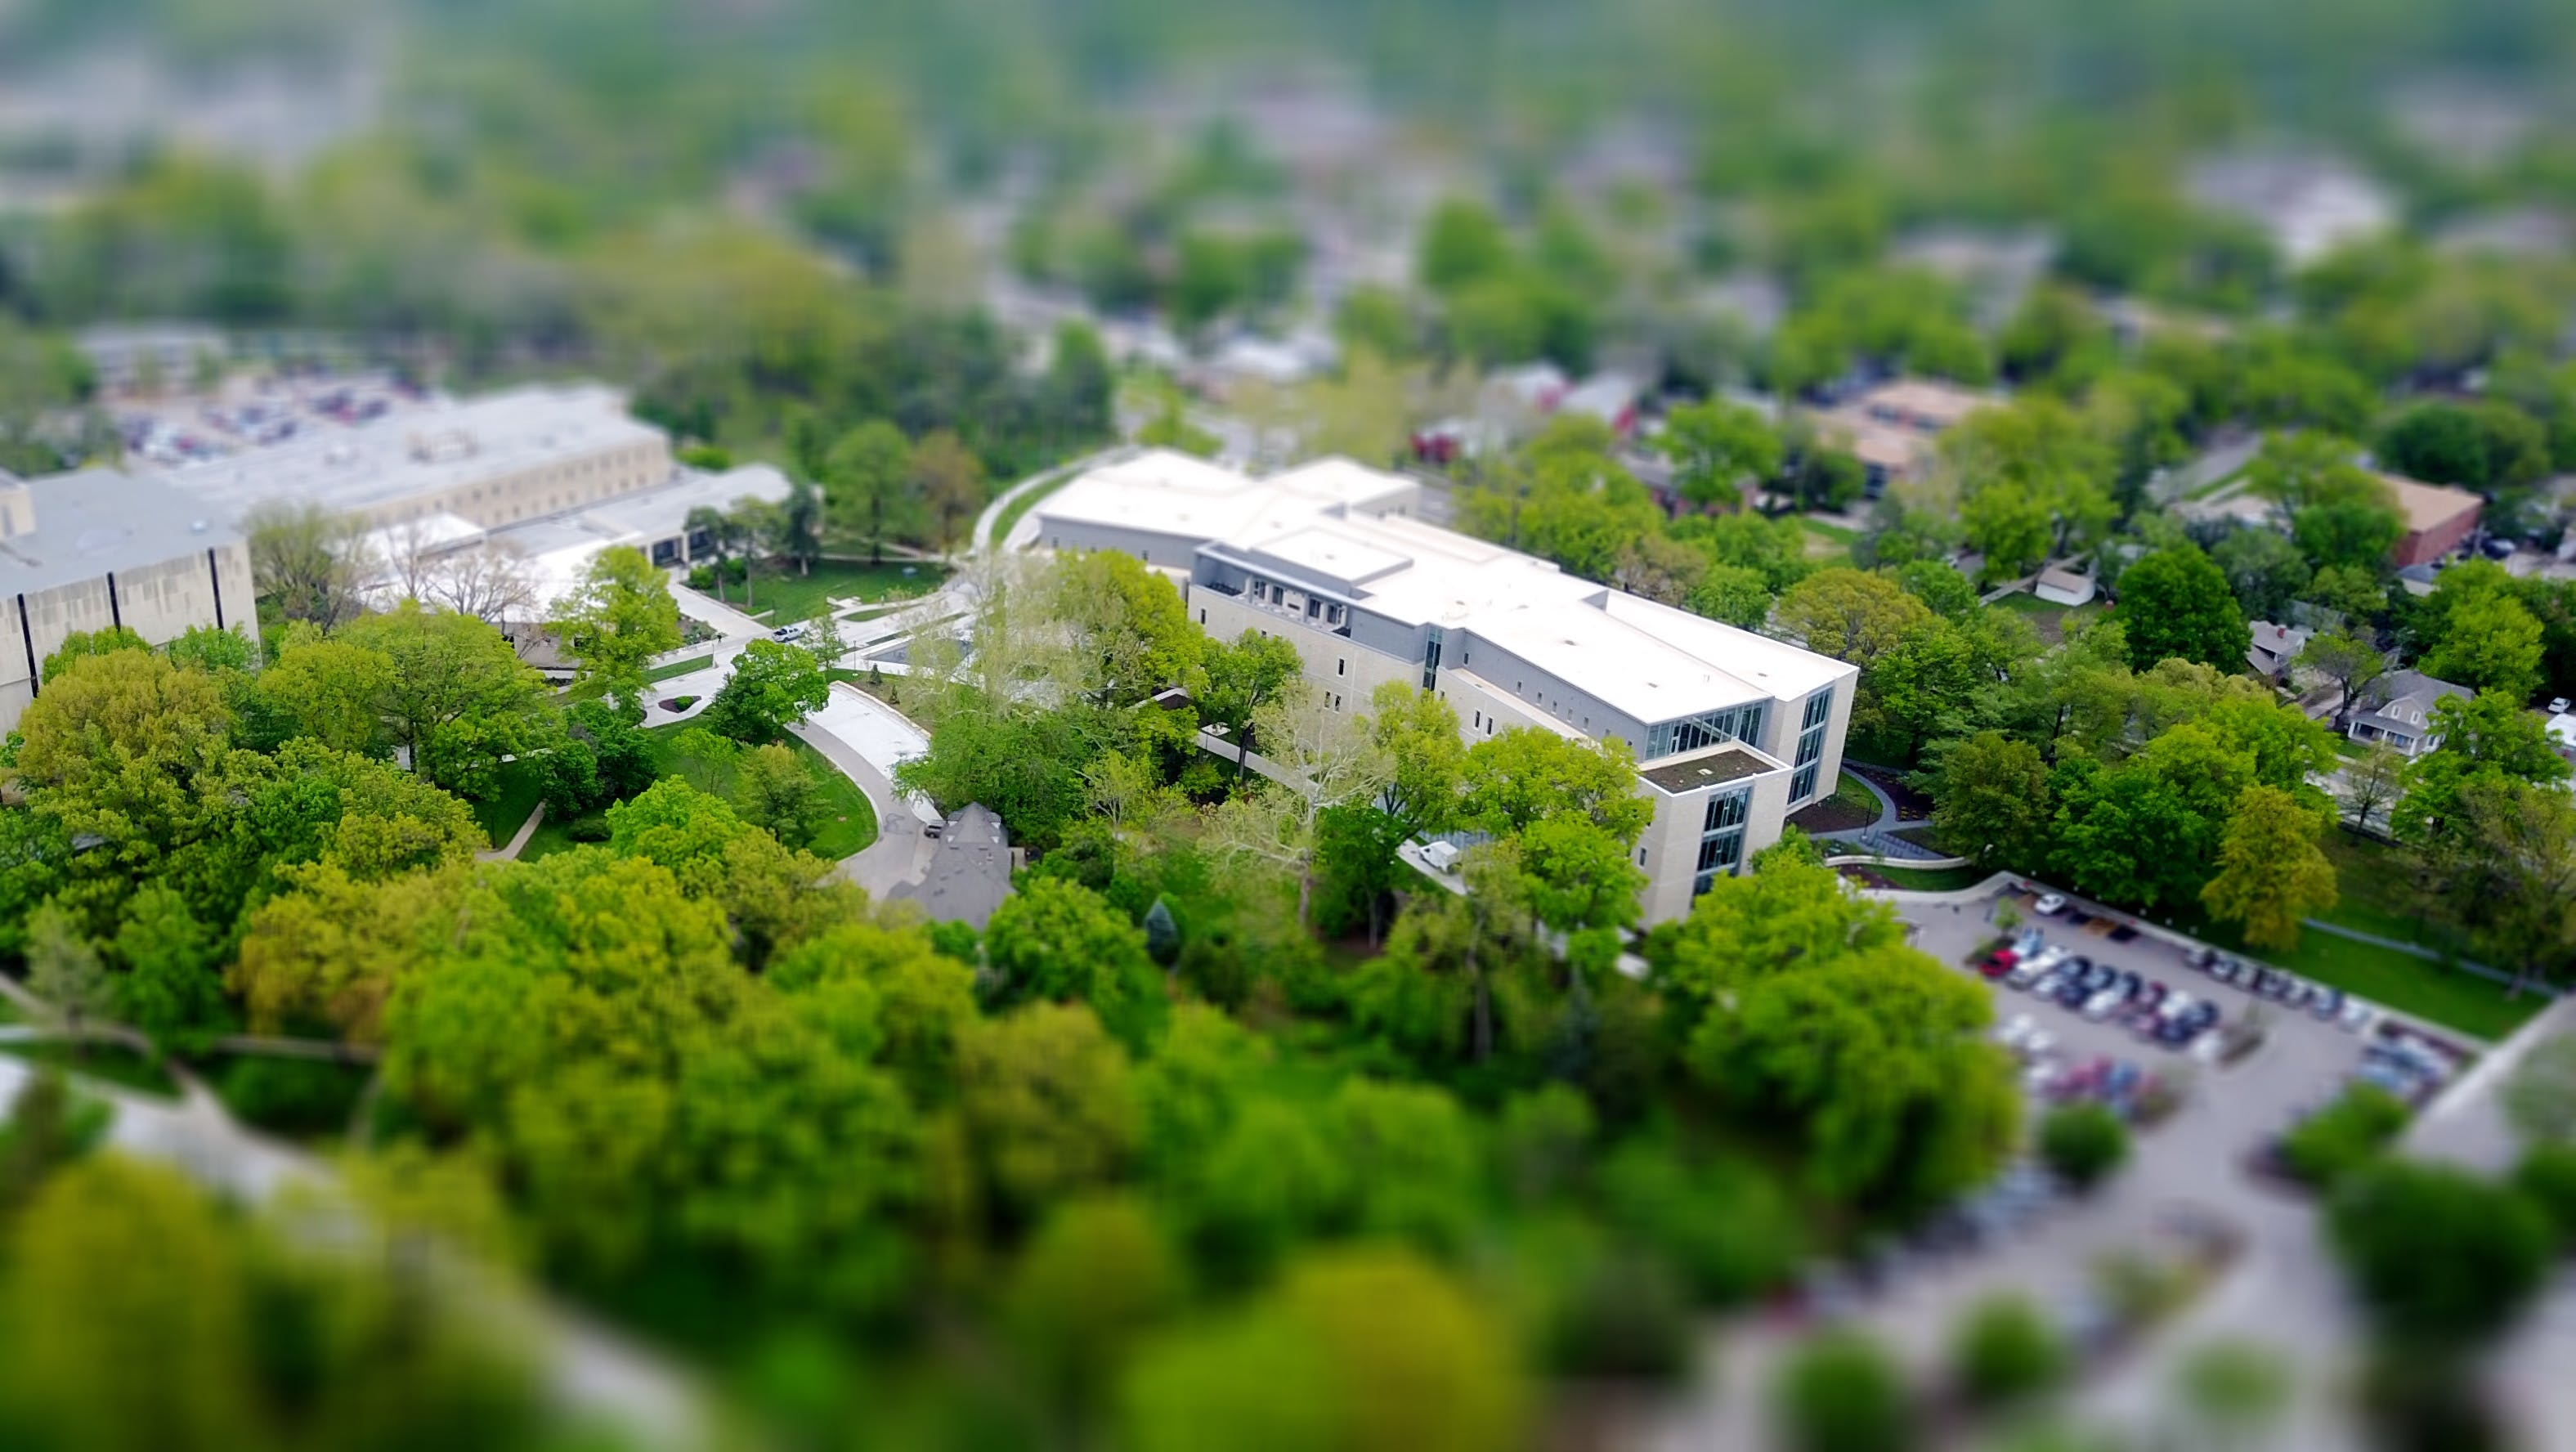 Tilt Shift Photo of White Structure